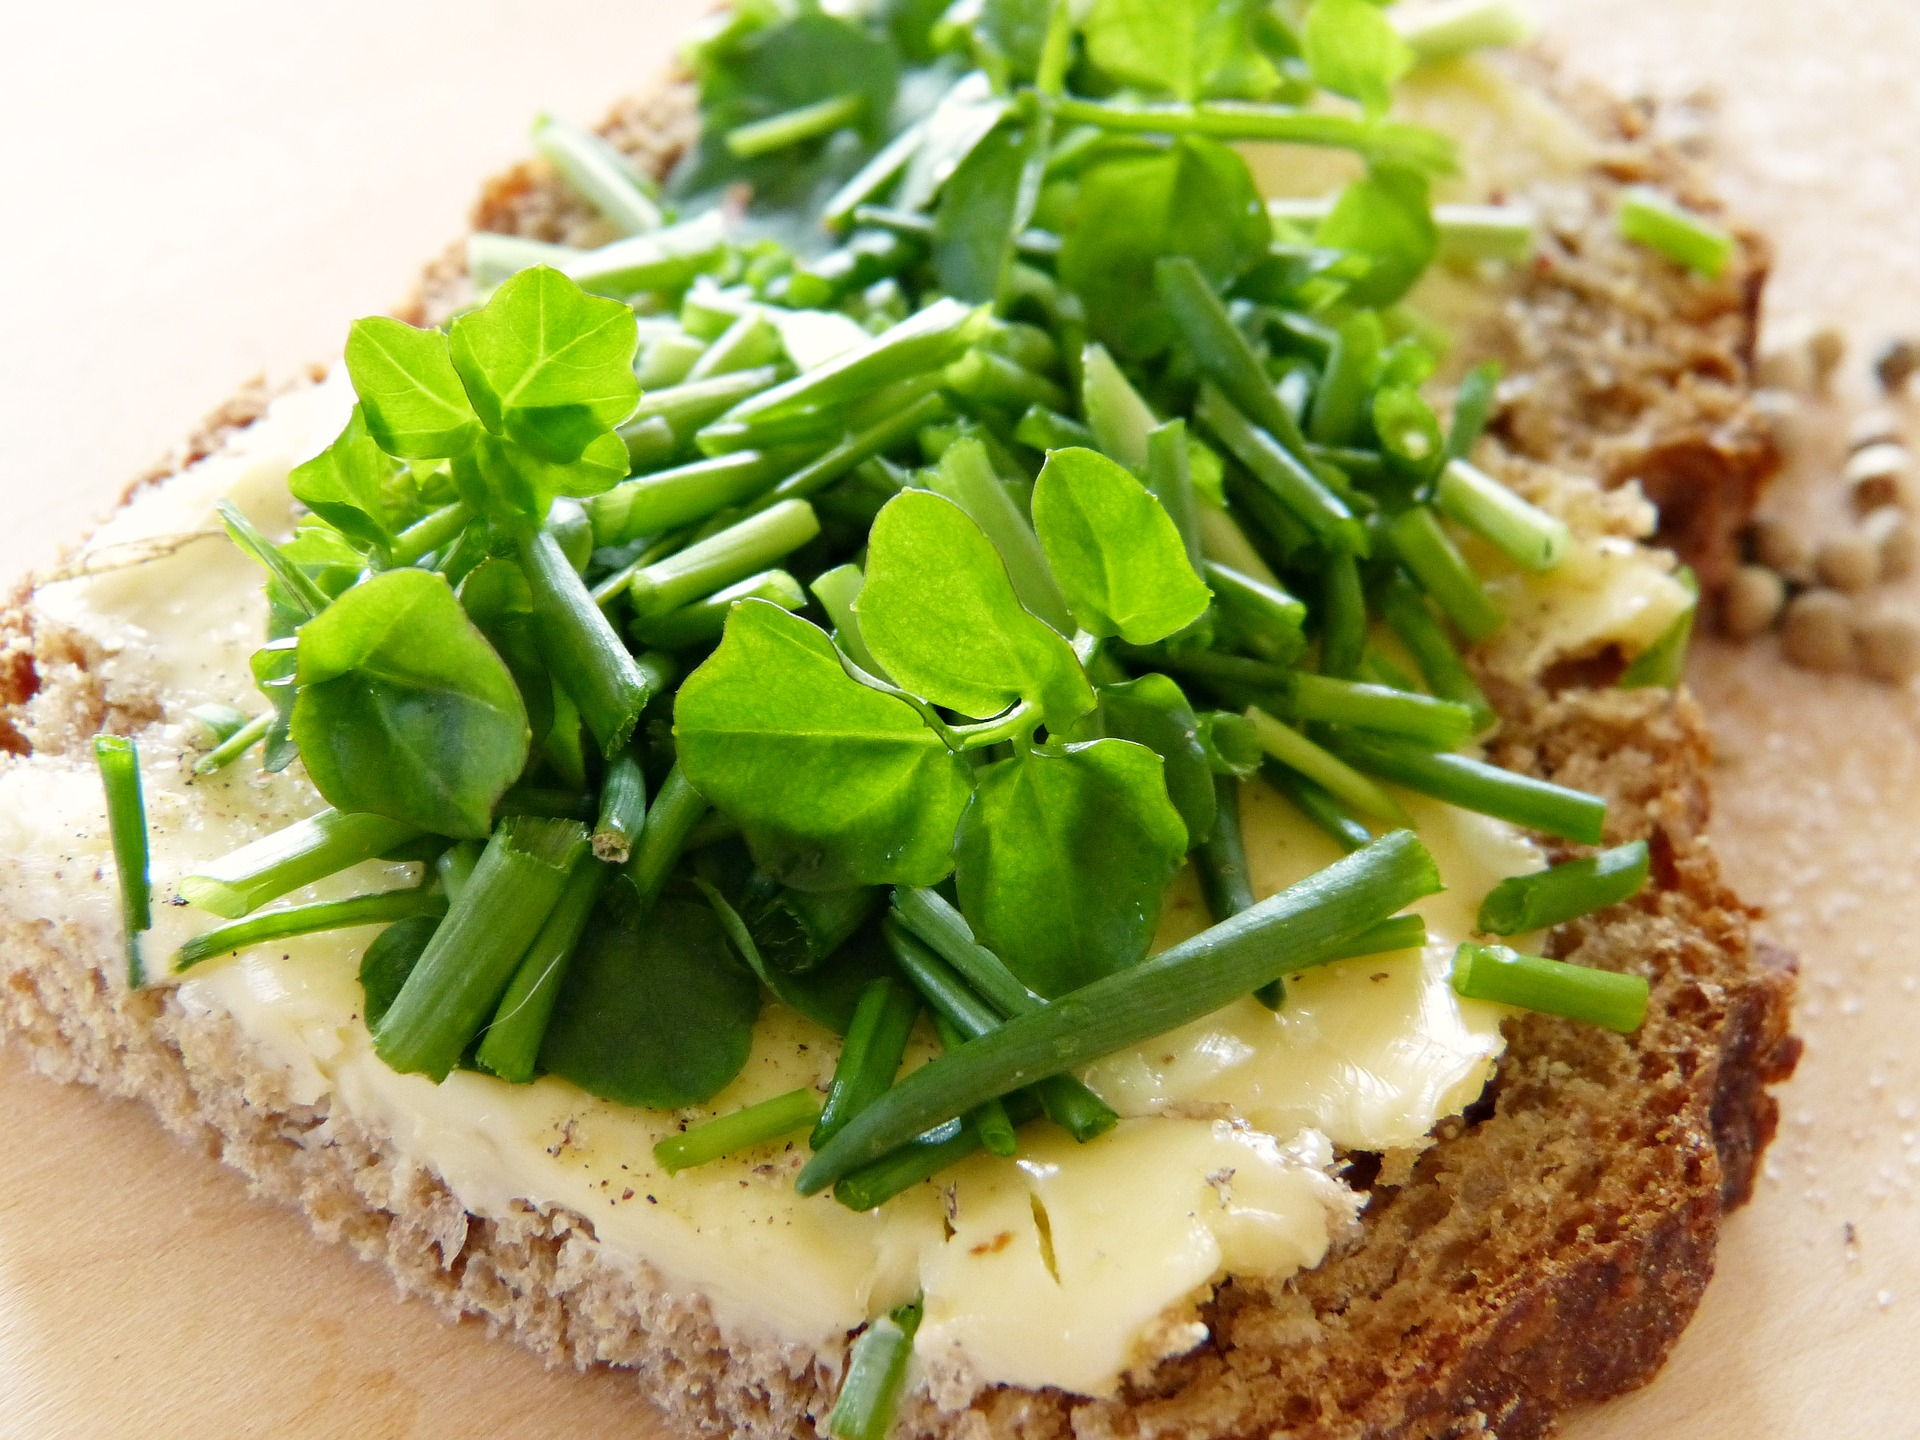 watercress-2148629_1920.jpg